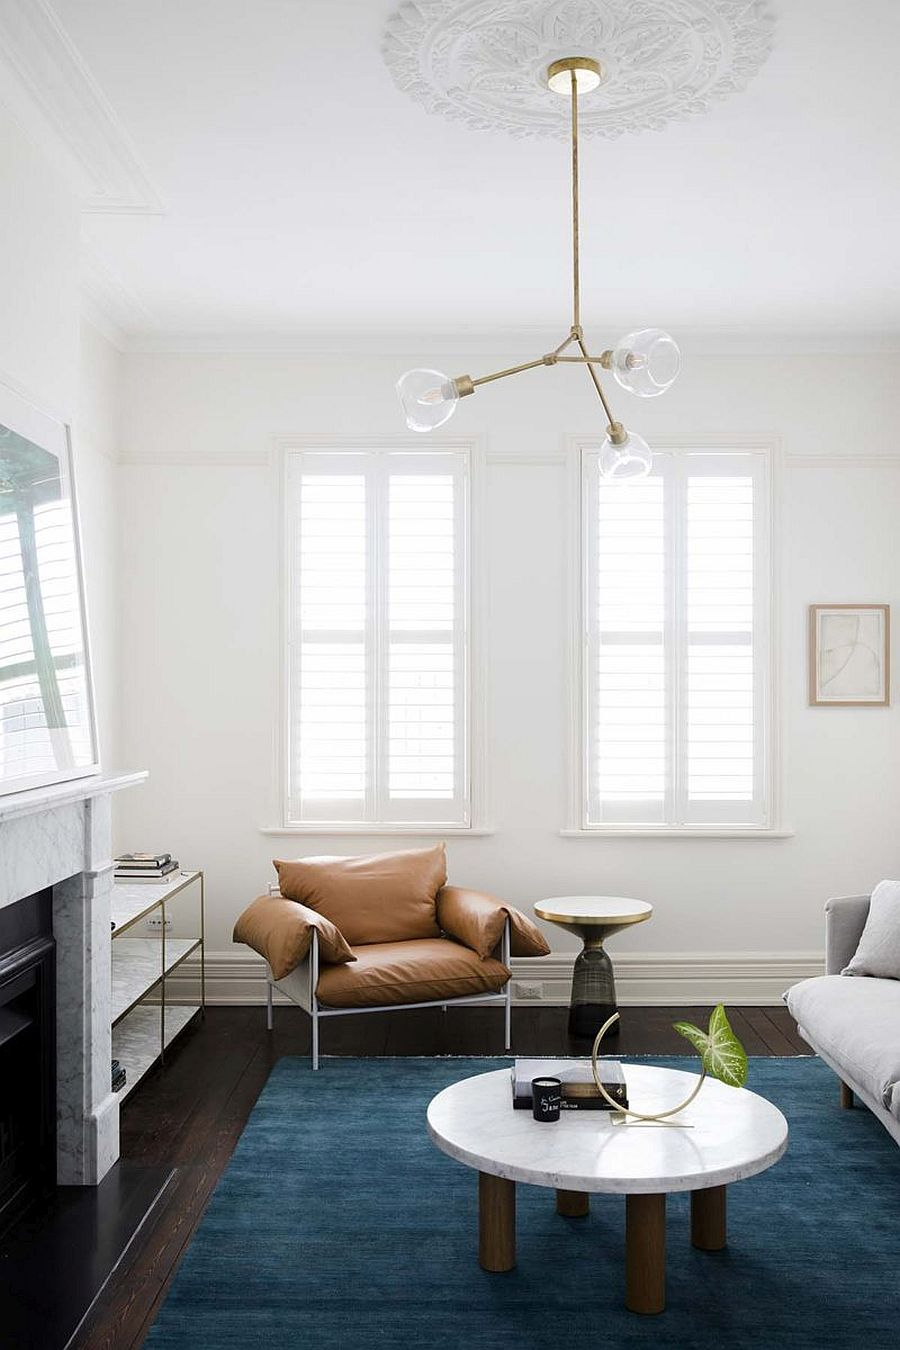 Spaces-inside-the-original-house-are-also-given-a-dashing-modern-makeover-26387